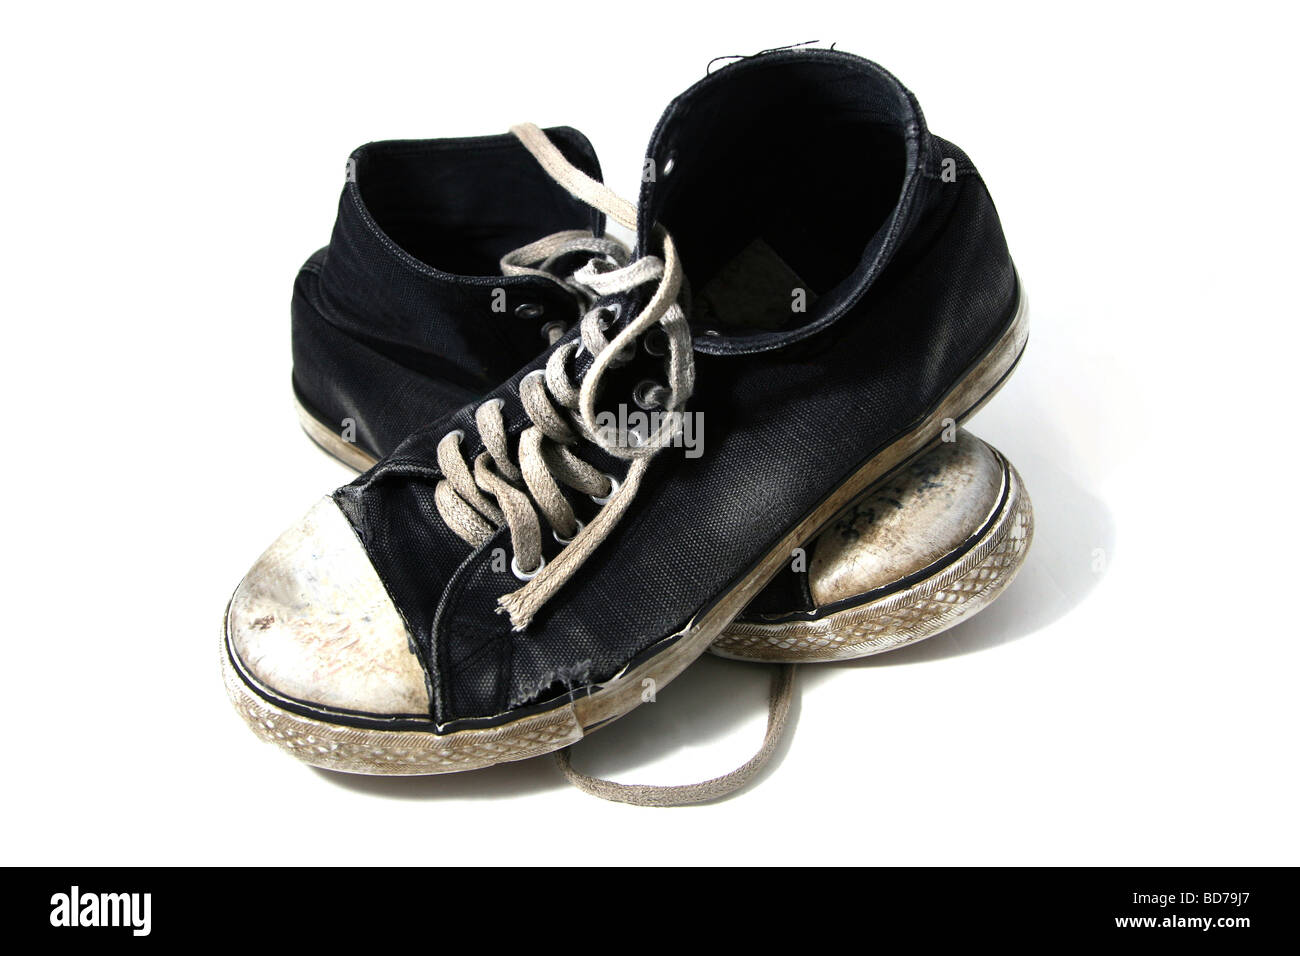 Old worn out sneakers - Stock Image